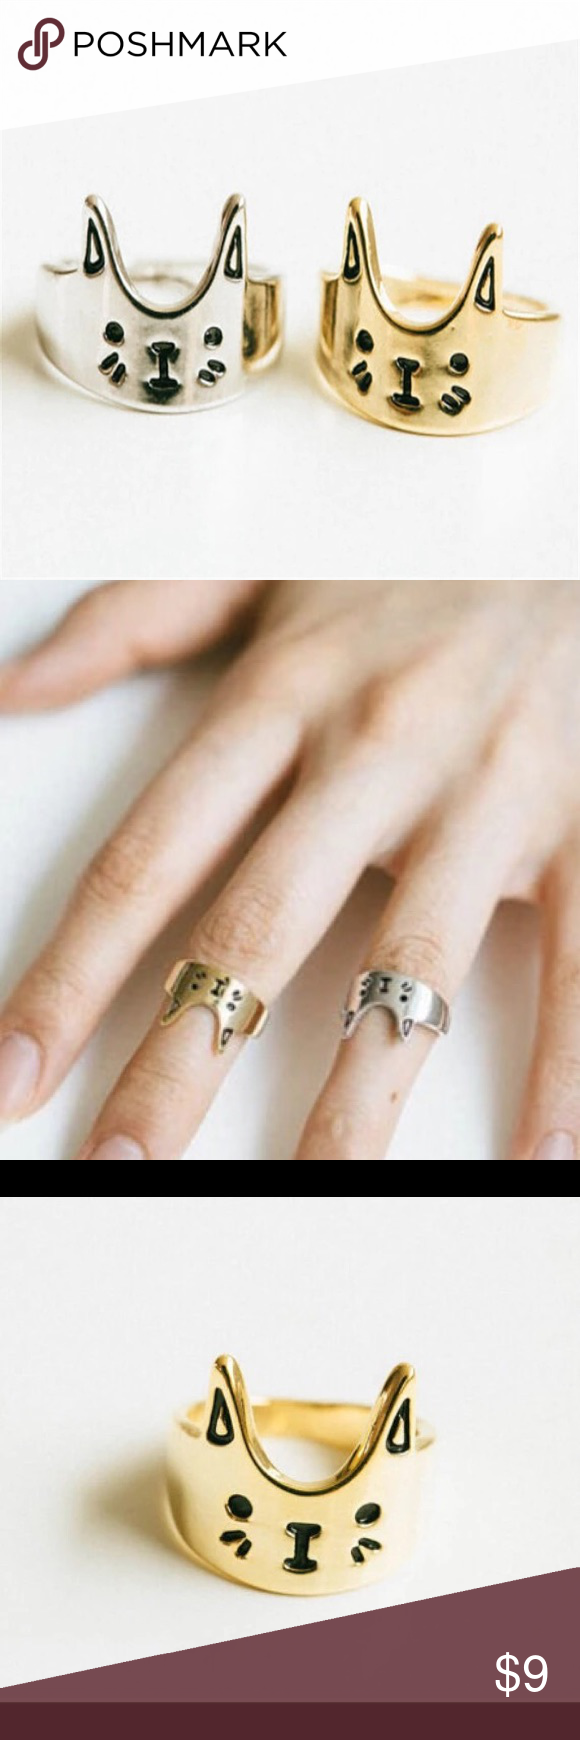 • SALE • Super Cute Gold Toned Cat Kitty Ring • ITEM DETAILS: • High quality • Made of zinc alloy • Nickel and lead free  DISCOUNT: • On bundles • 30% off for return customers  SHIPPING: • The next day  NOTE: • Color may be slightly different from the actual item due to the lighting • Reasonable offers welcome Jewelry Rings